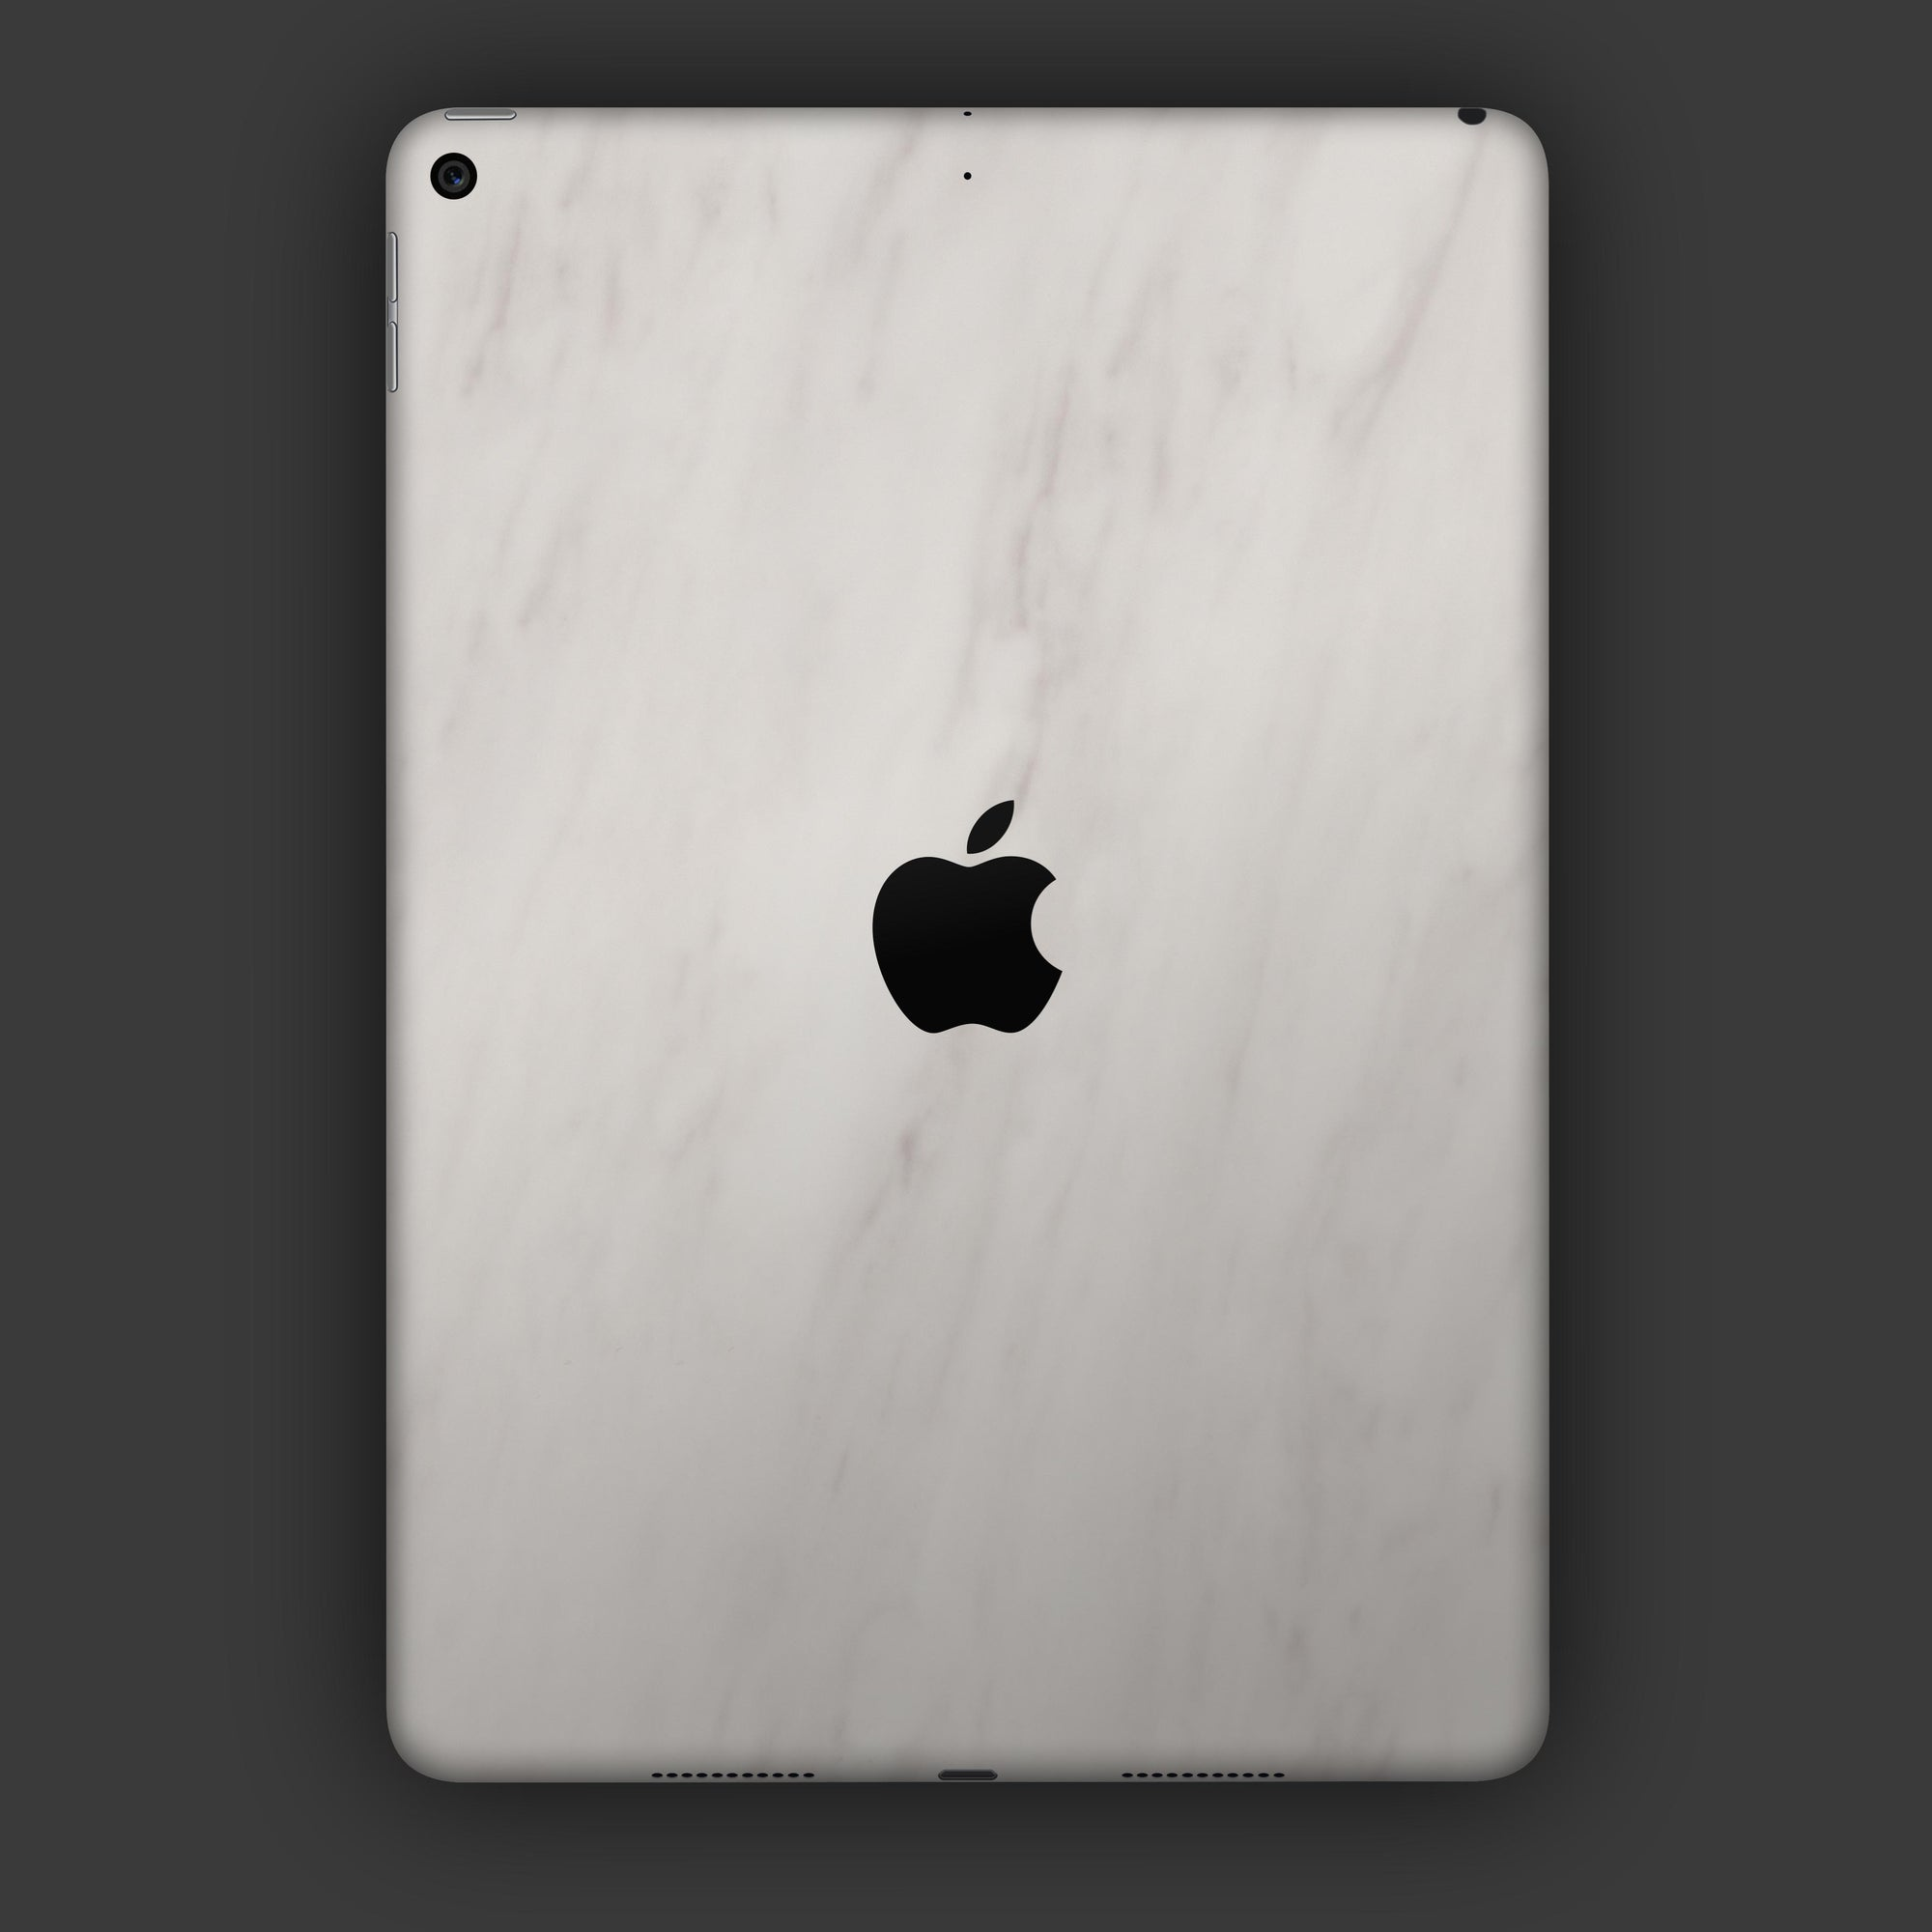 iPad-9-7-mit-Apple-Logo-in-Marmor